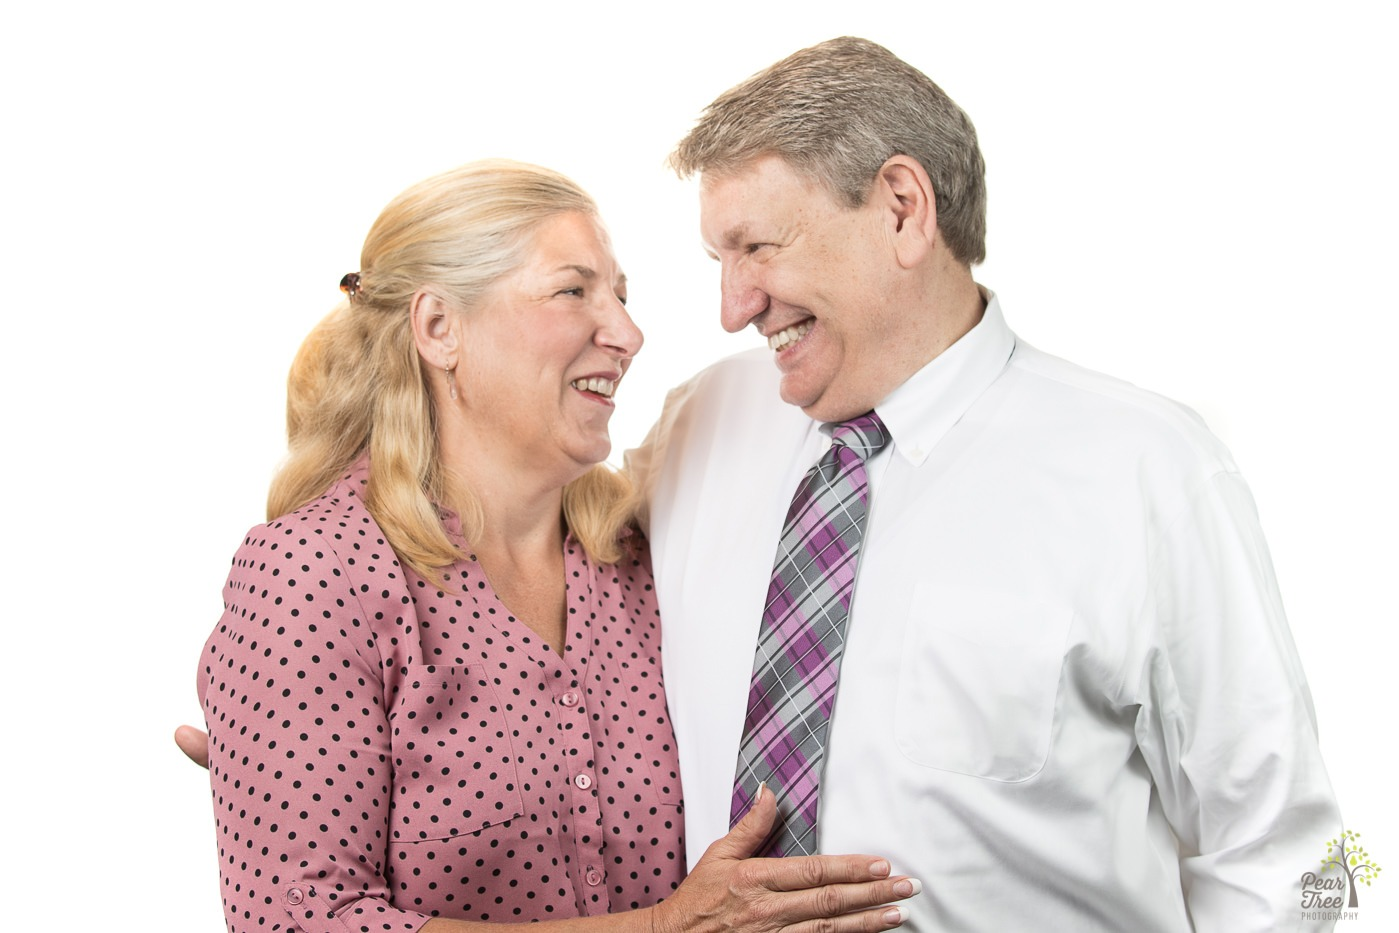 Husband and wife holding each other close and laughing at each other.